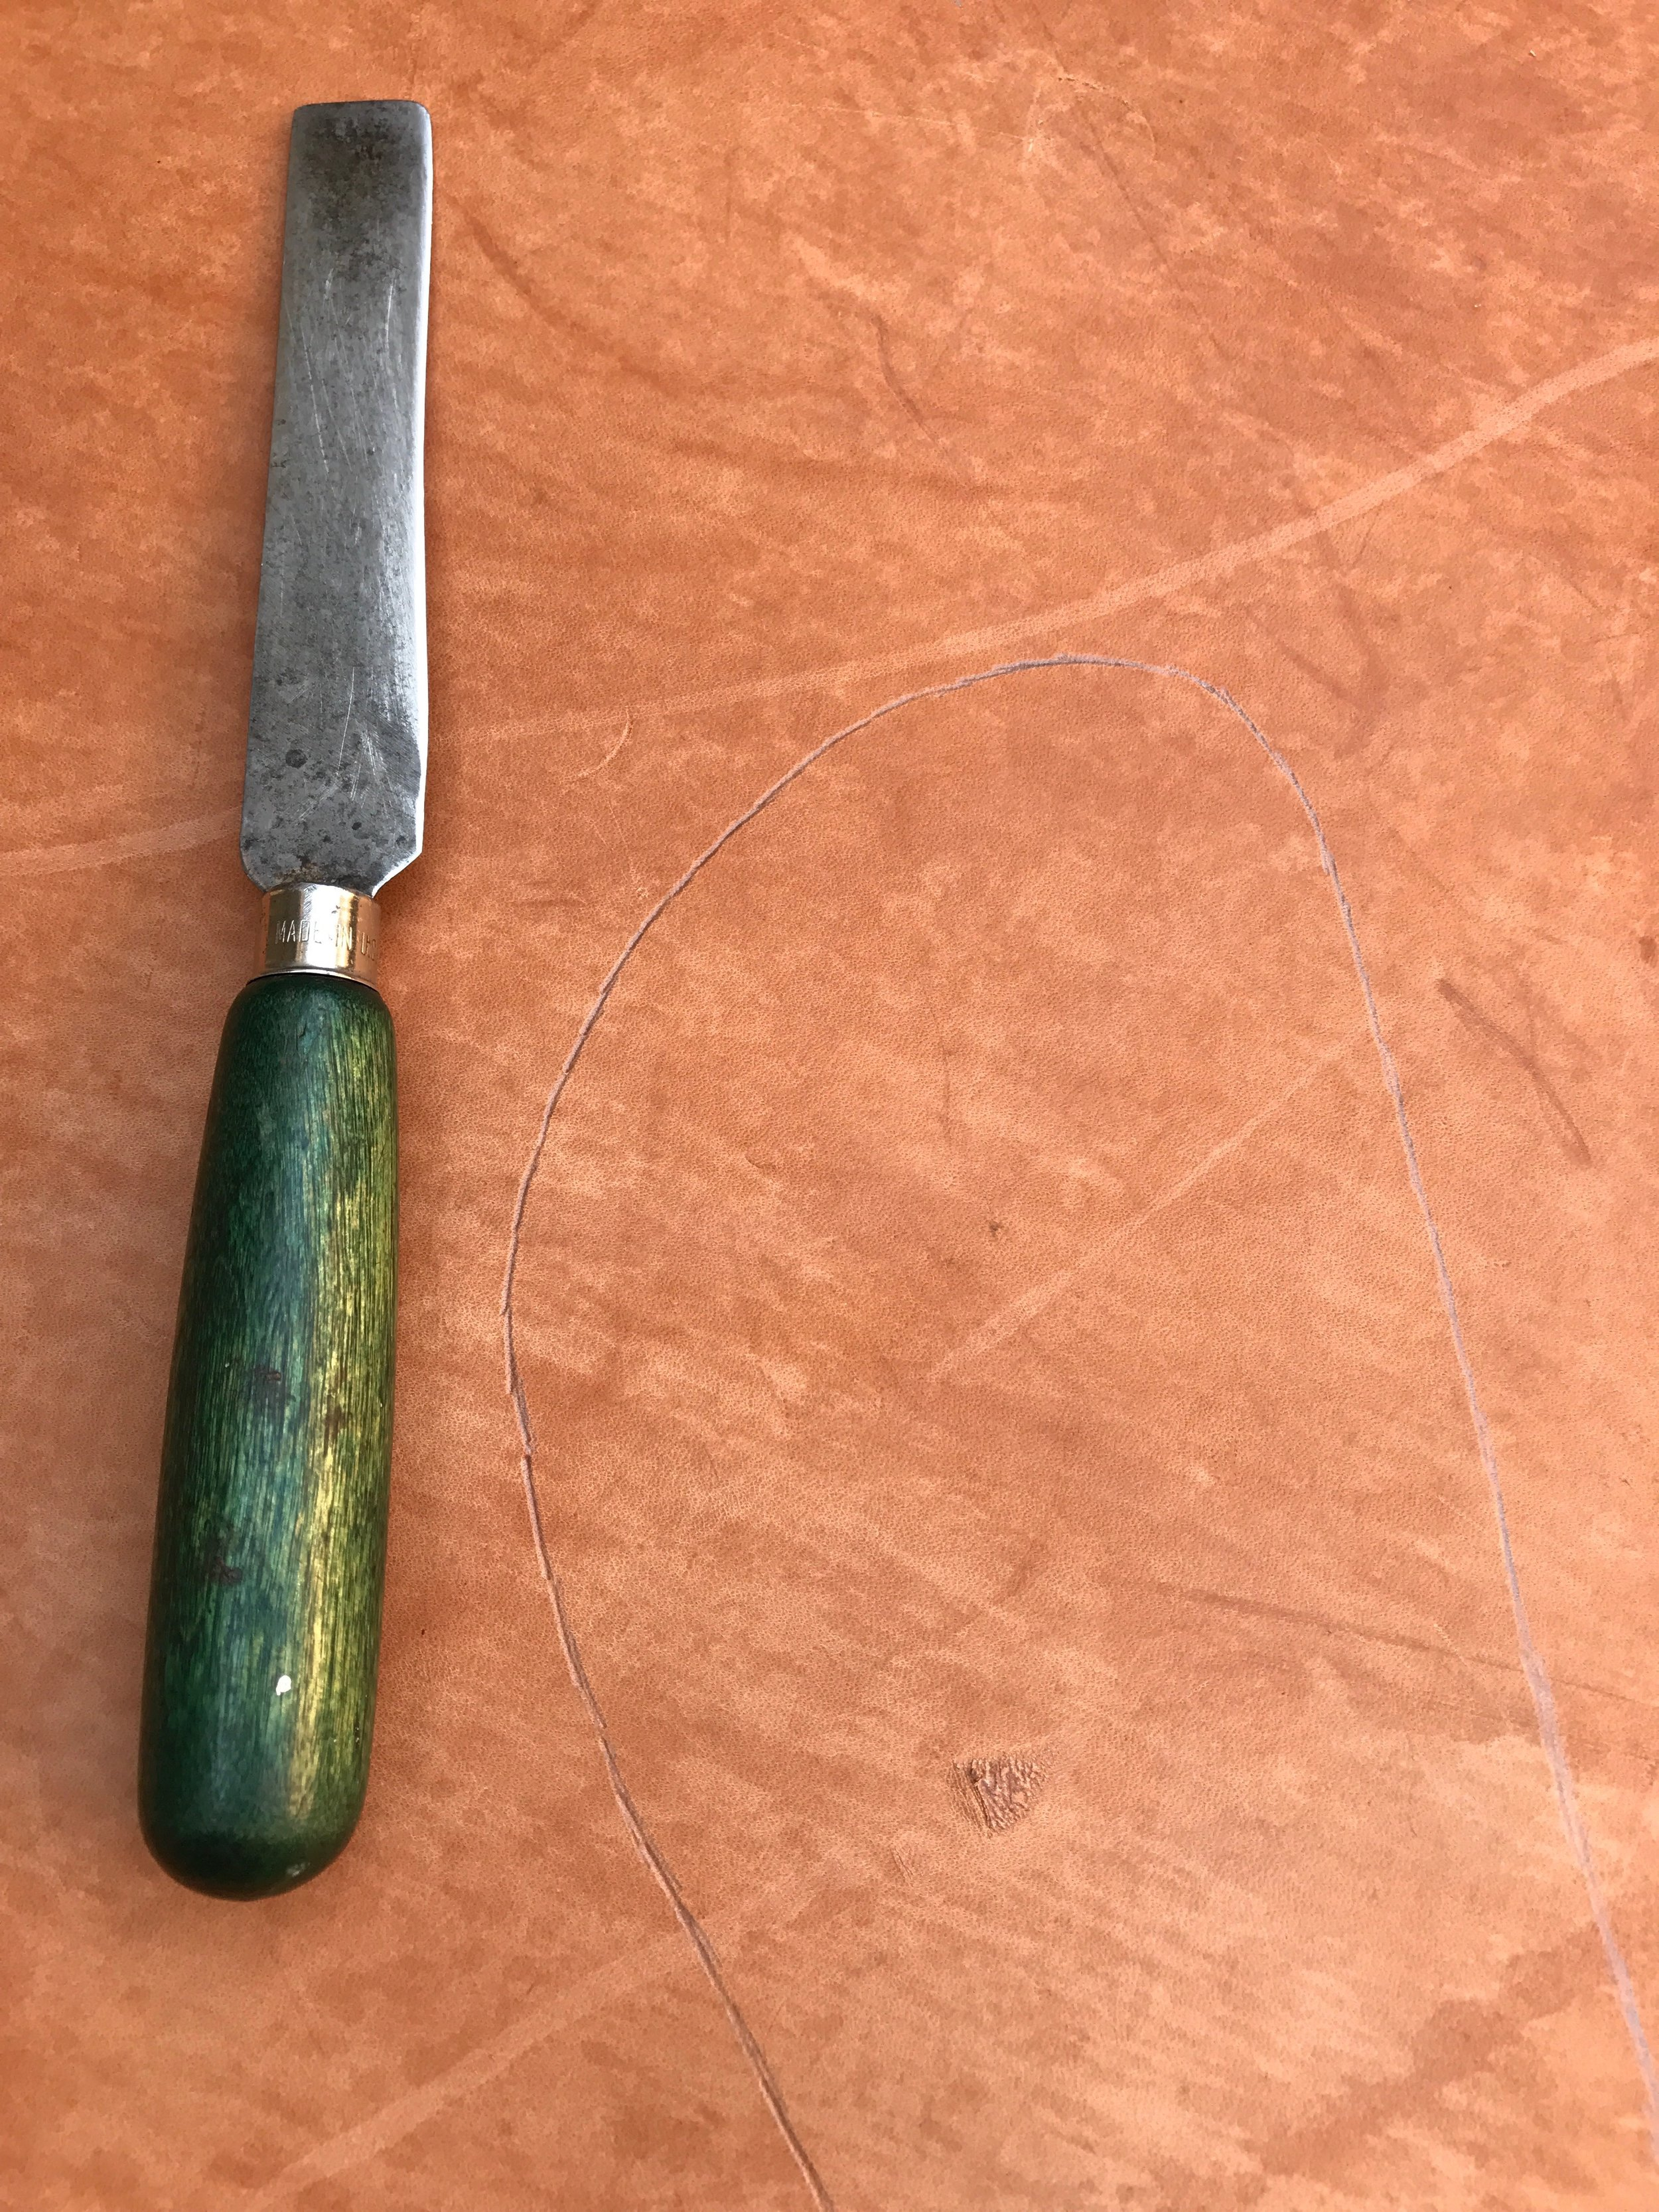 This gorgeous knife also happens to be one of my favorite colors. This is the shape of my foot on the sole leather.